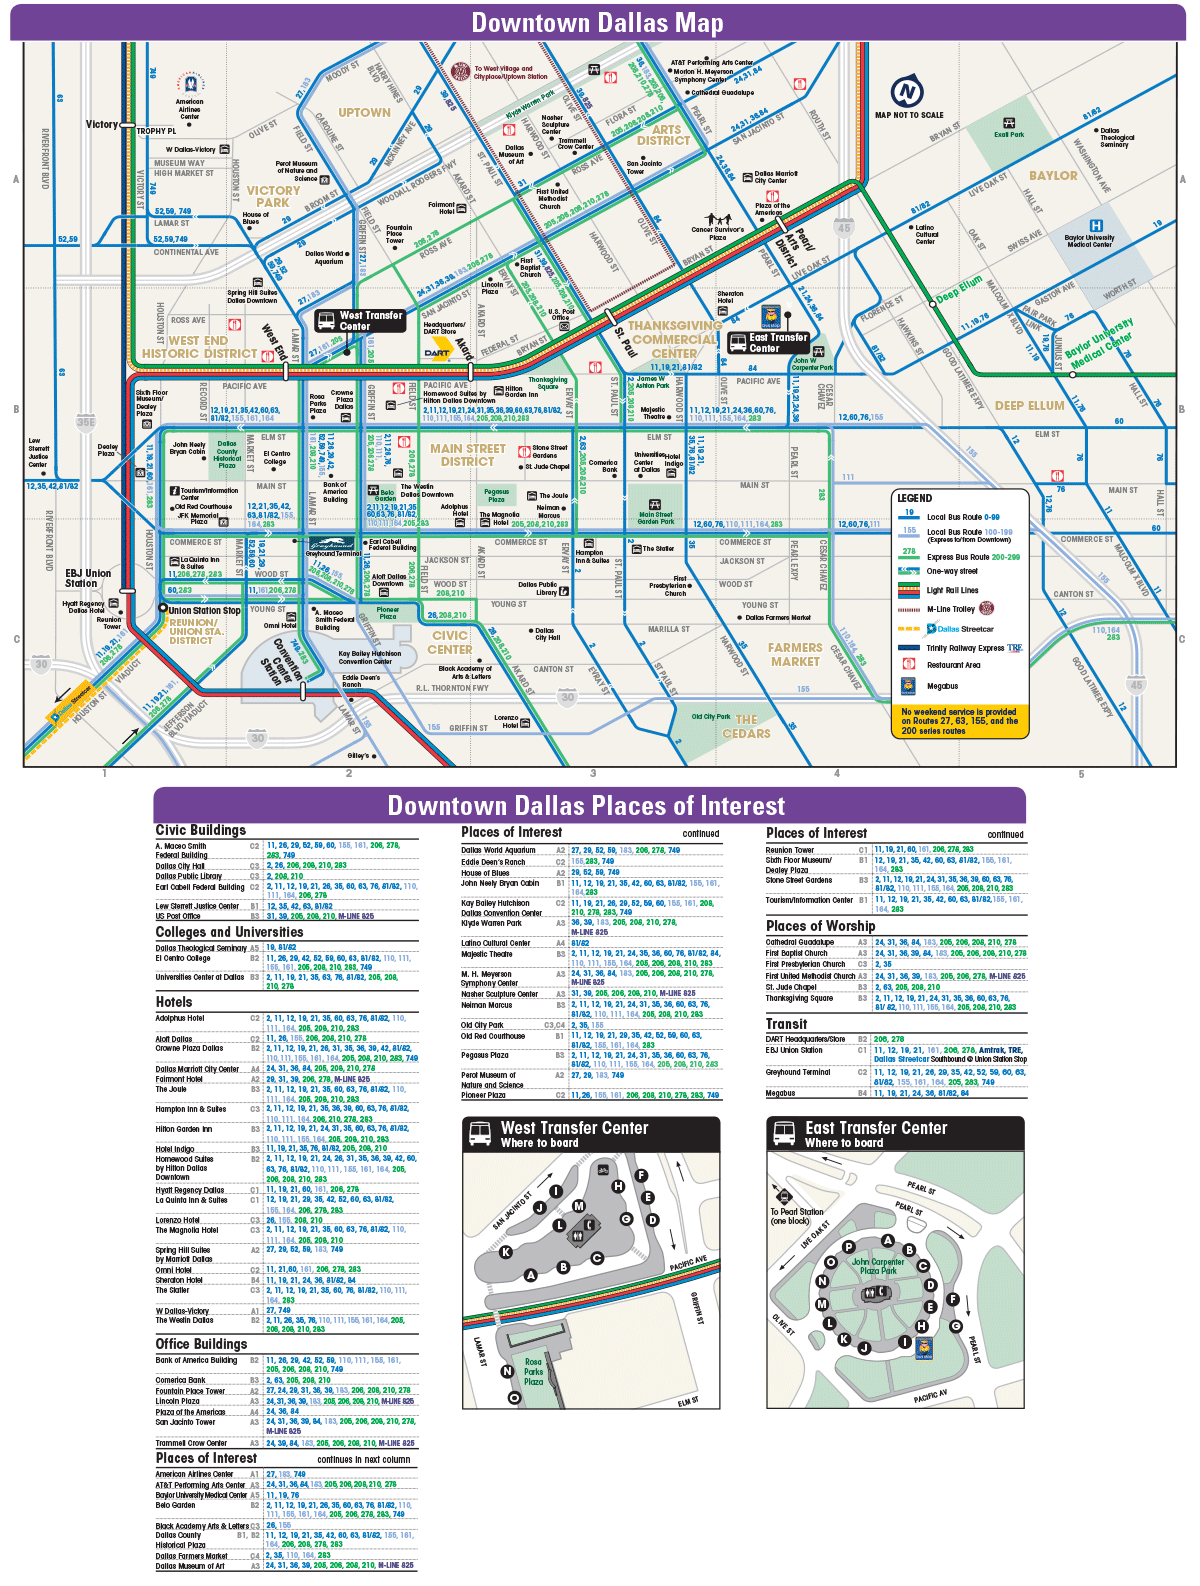 downtown dallas map pdf Dart Org Downtown Dallas Bus Routing And Places Of Interest downtown dallas map pdf